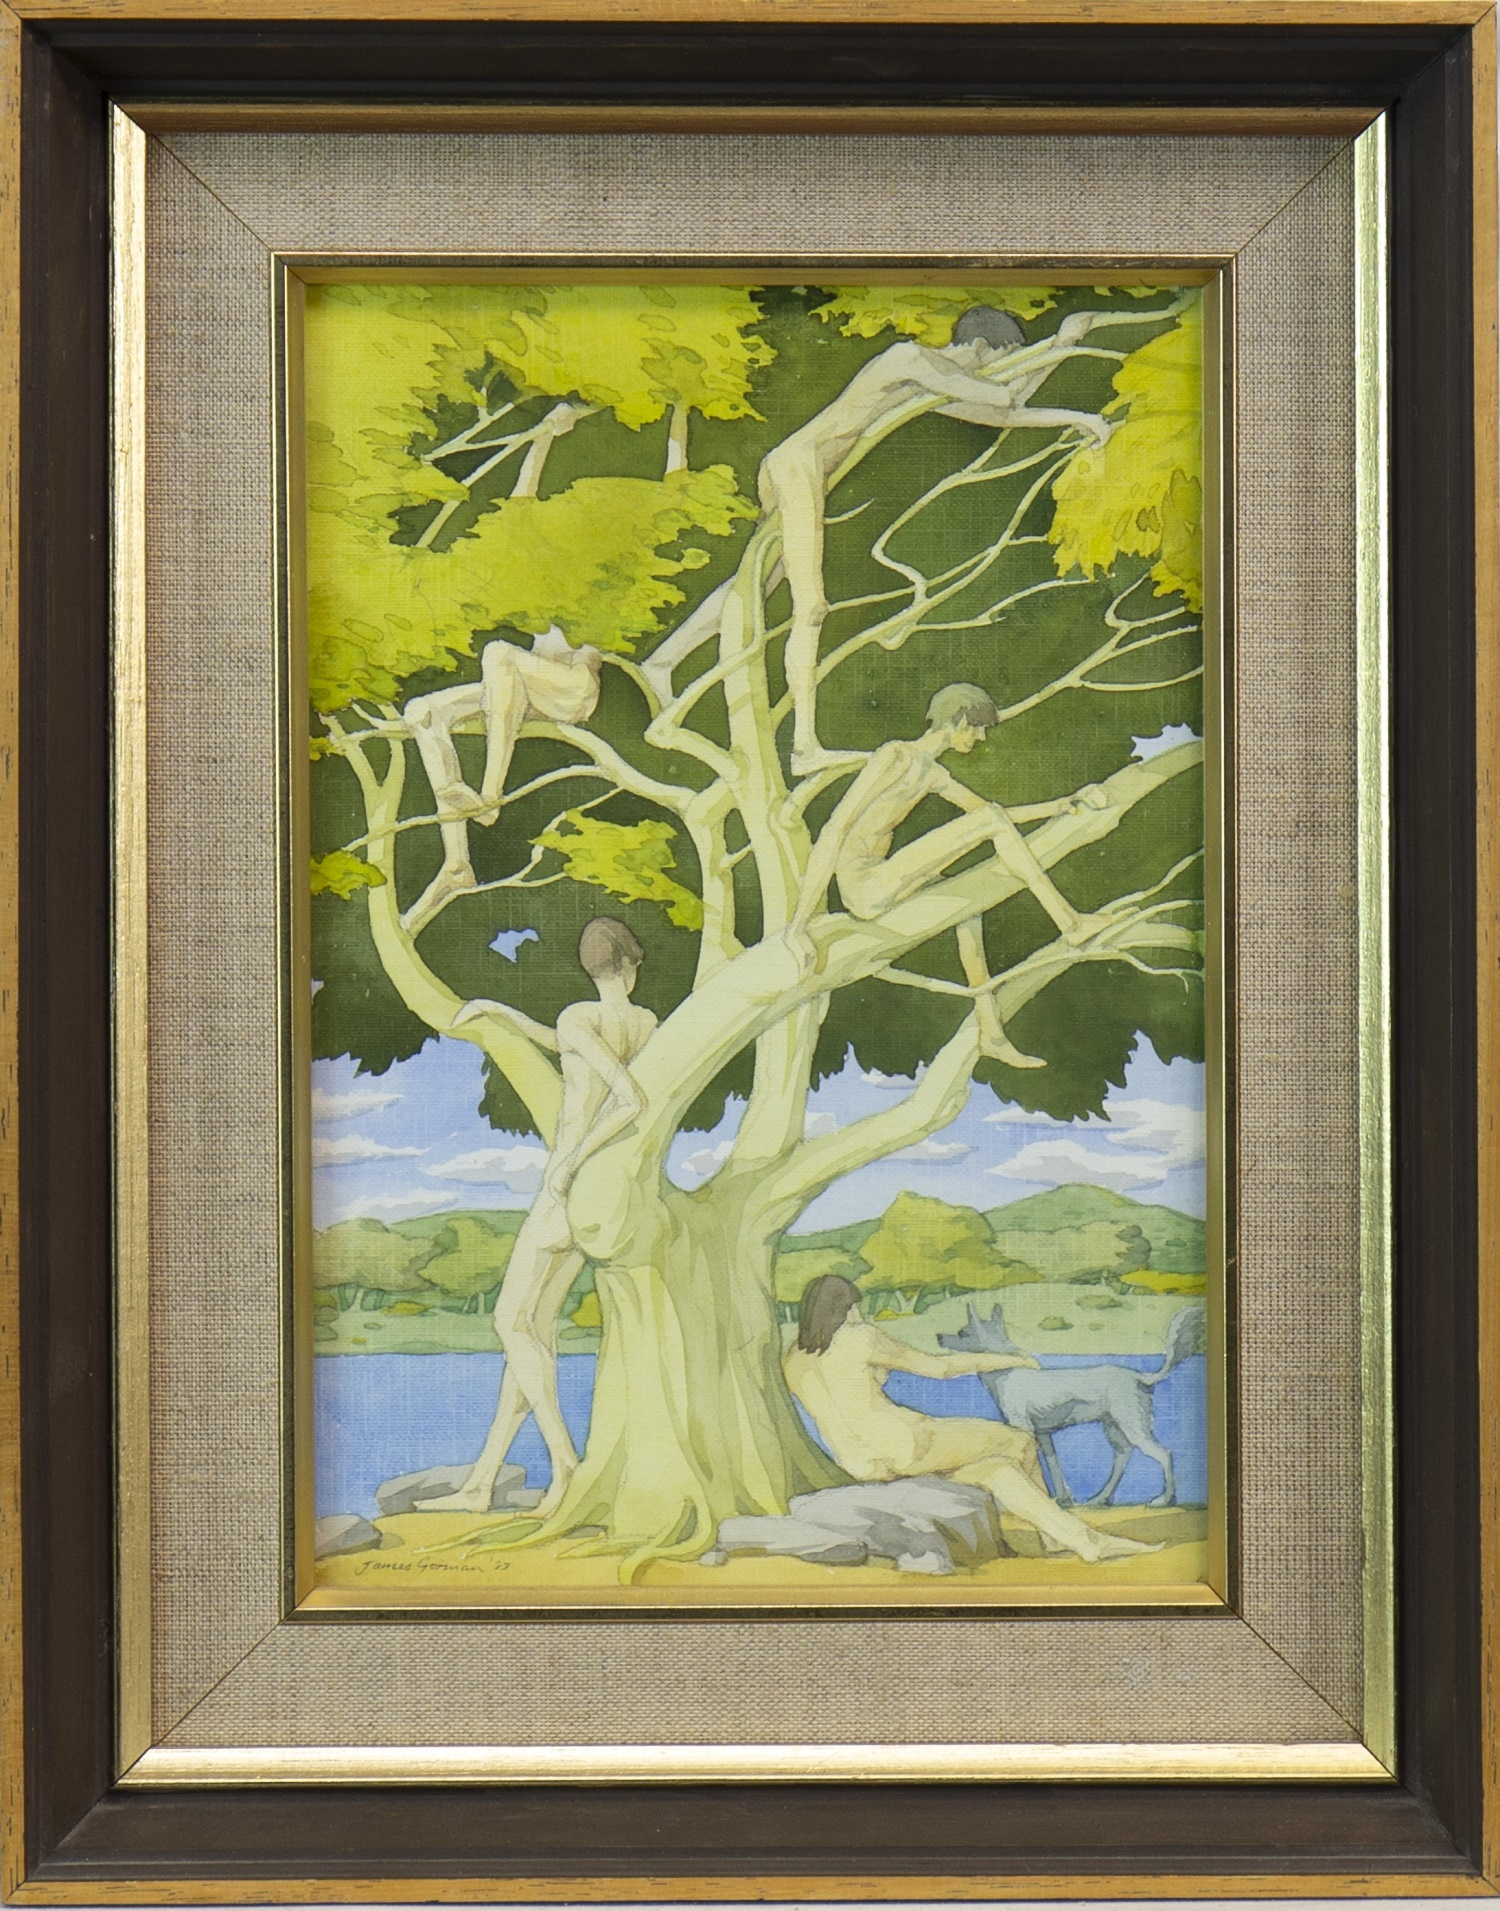 Lot 528 - THE TREE OF YOUTH, A WATERCOLOUR BY JAMES GORMAN